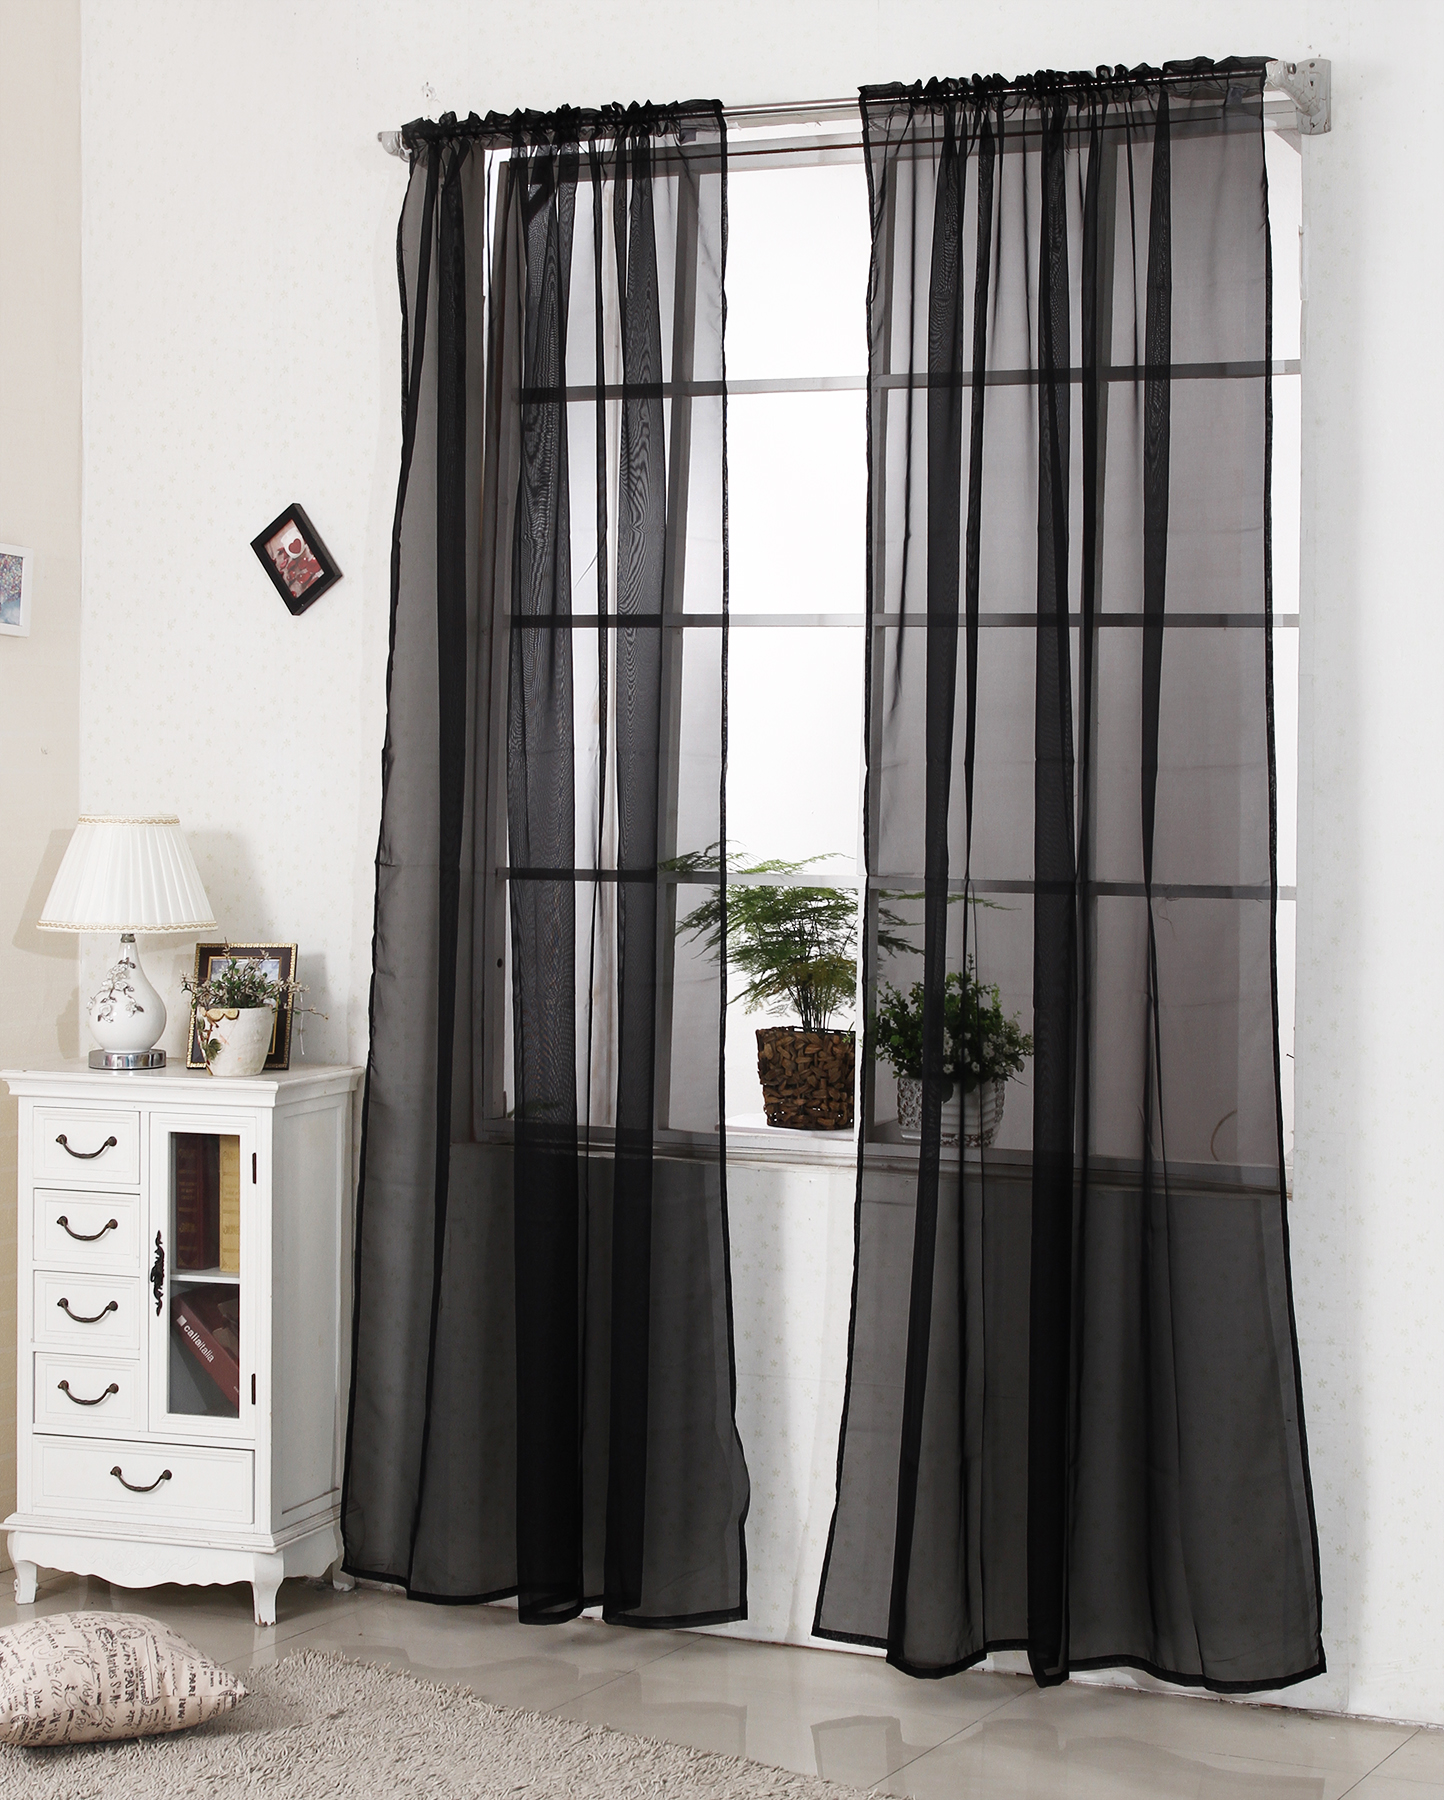 gardinen vorhang stores mit 50mm kr uselband transparent dekoschal voile 305 ebay. Black Bedroom Furniture Sets. Home Design Ideas